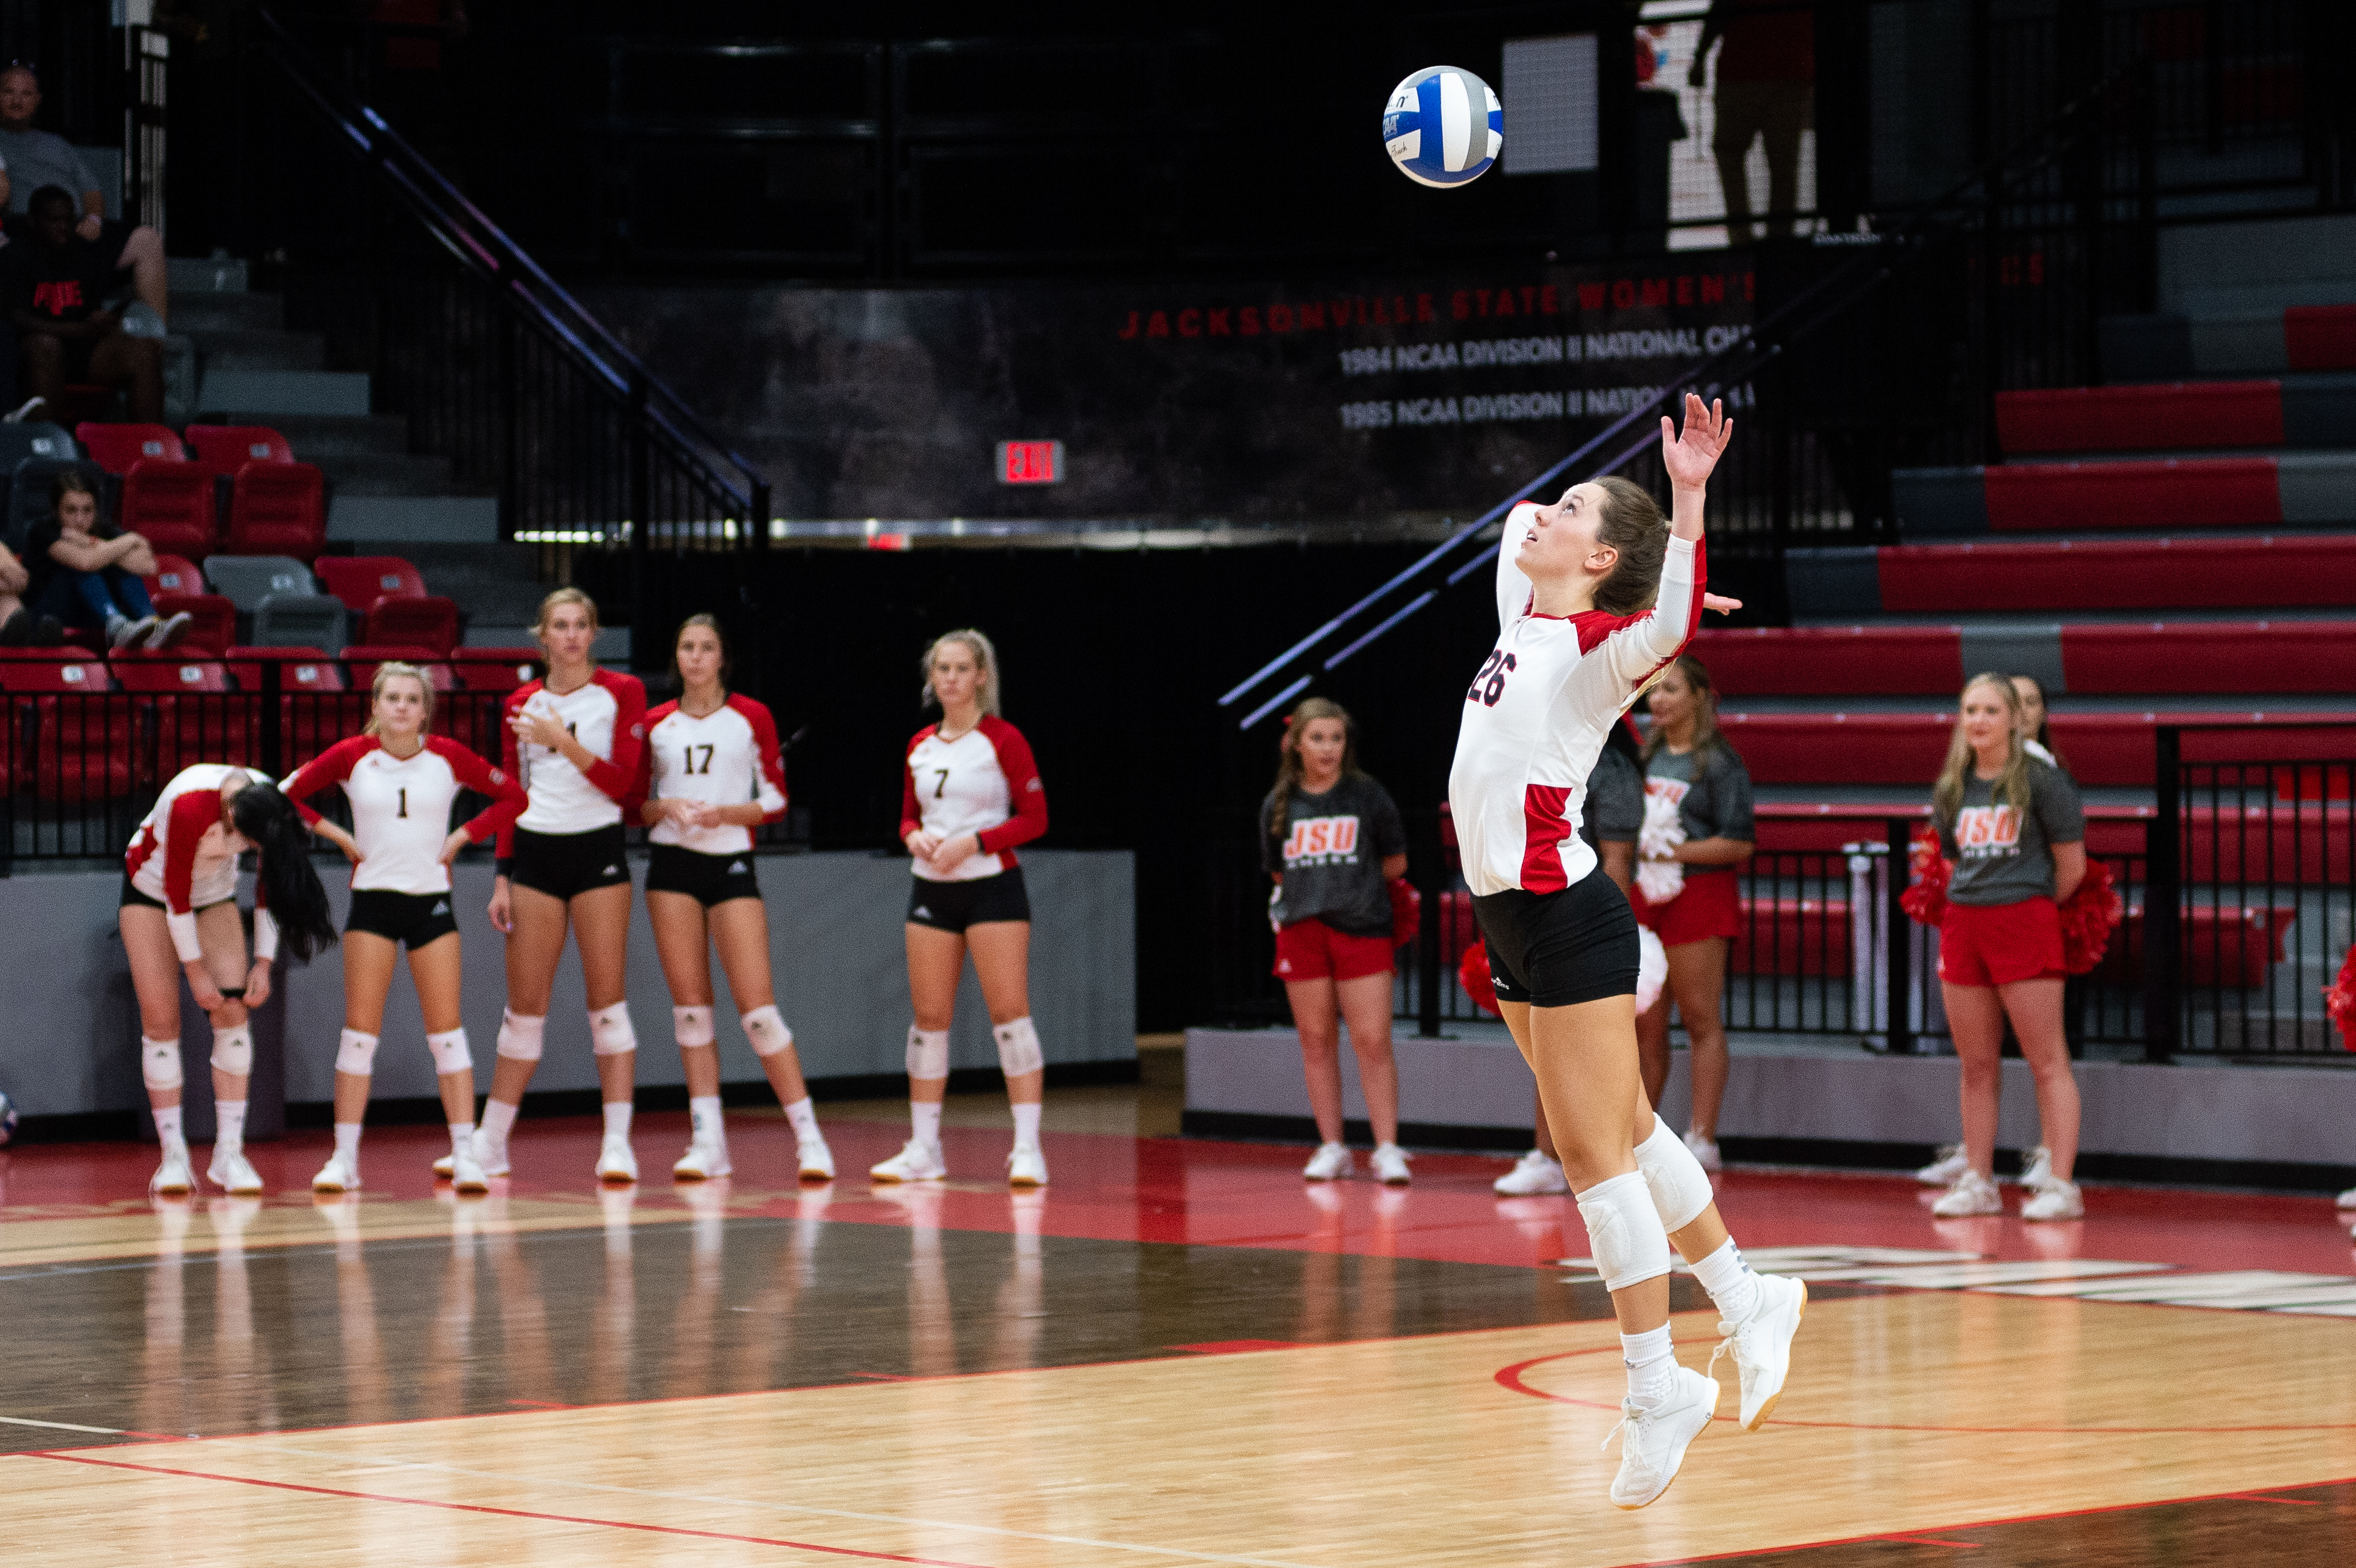 Senior Maddie Cloutier jump-serves the ball for her team. (Courtesy of JSU)